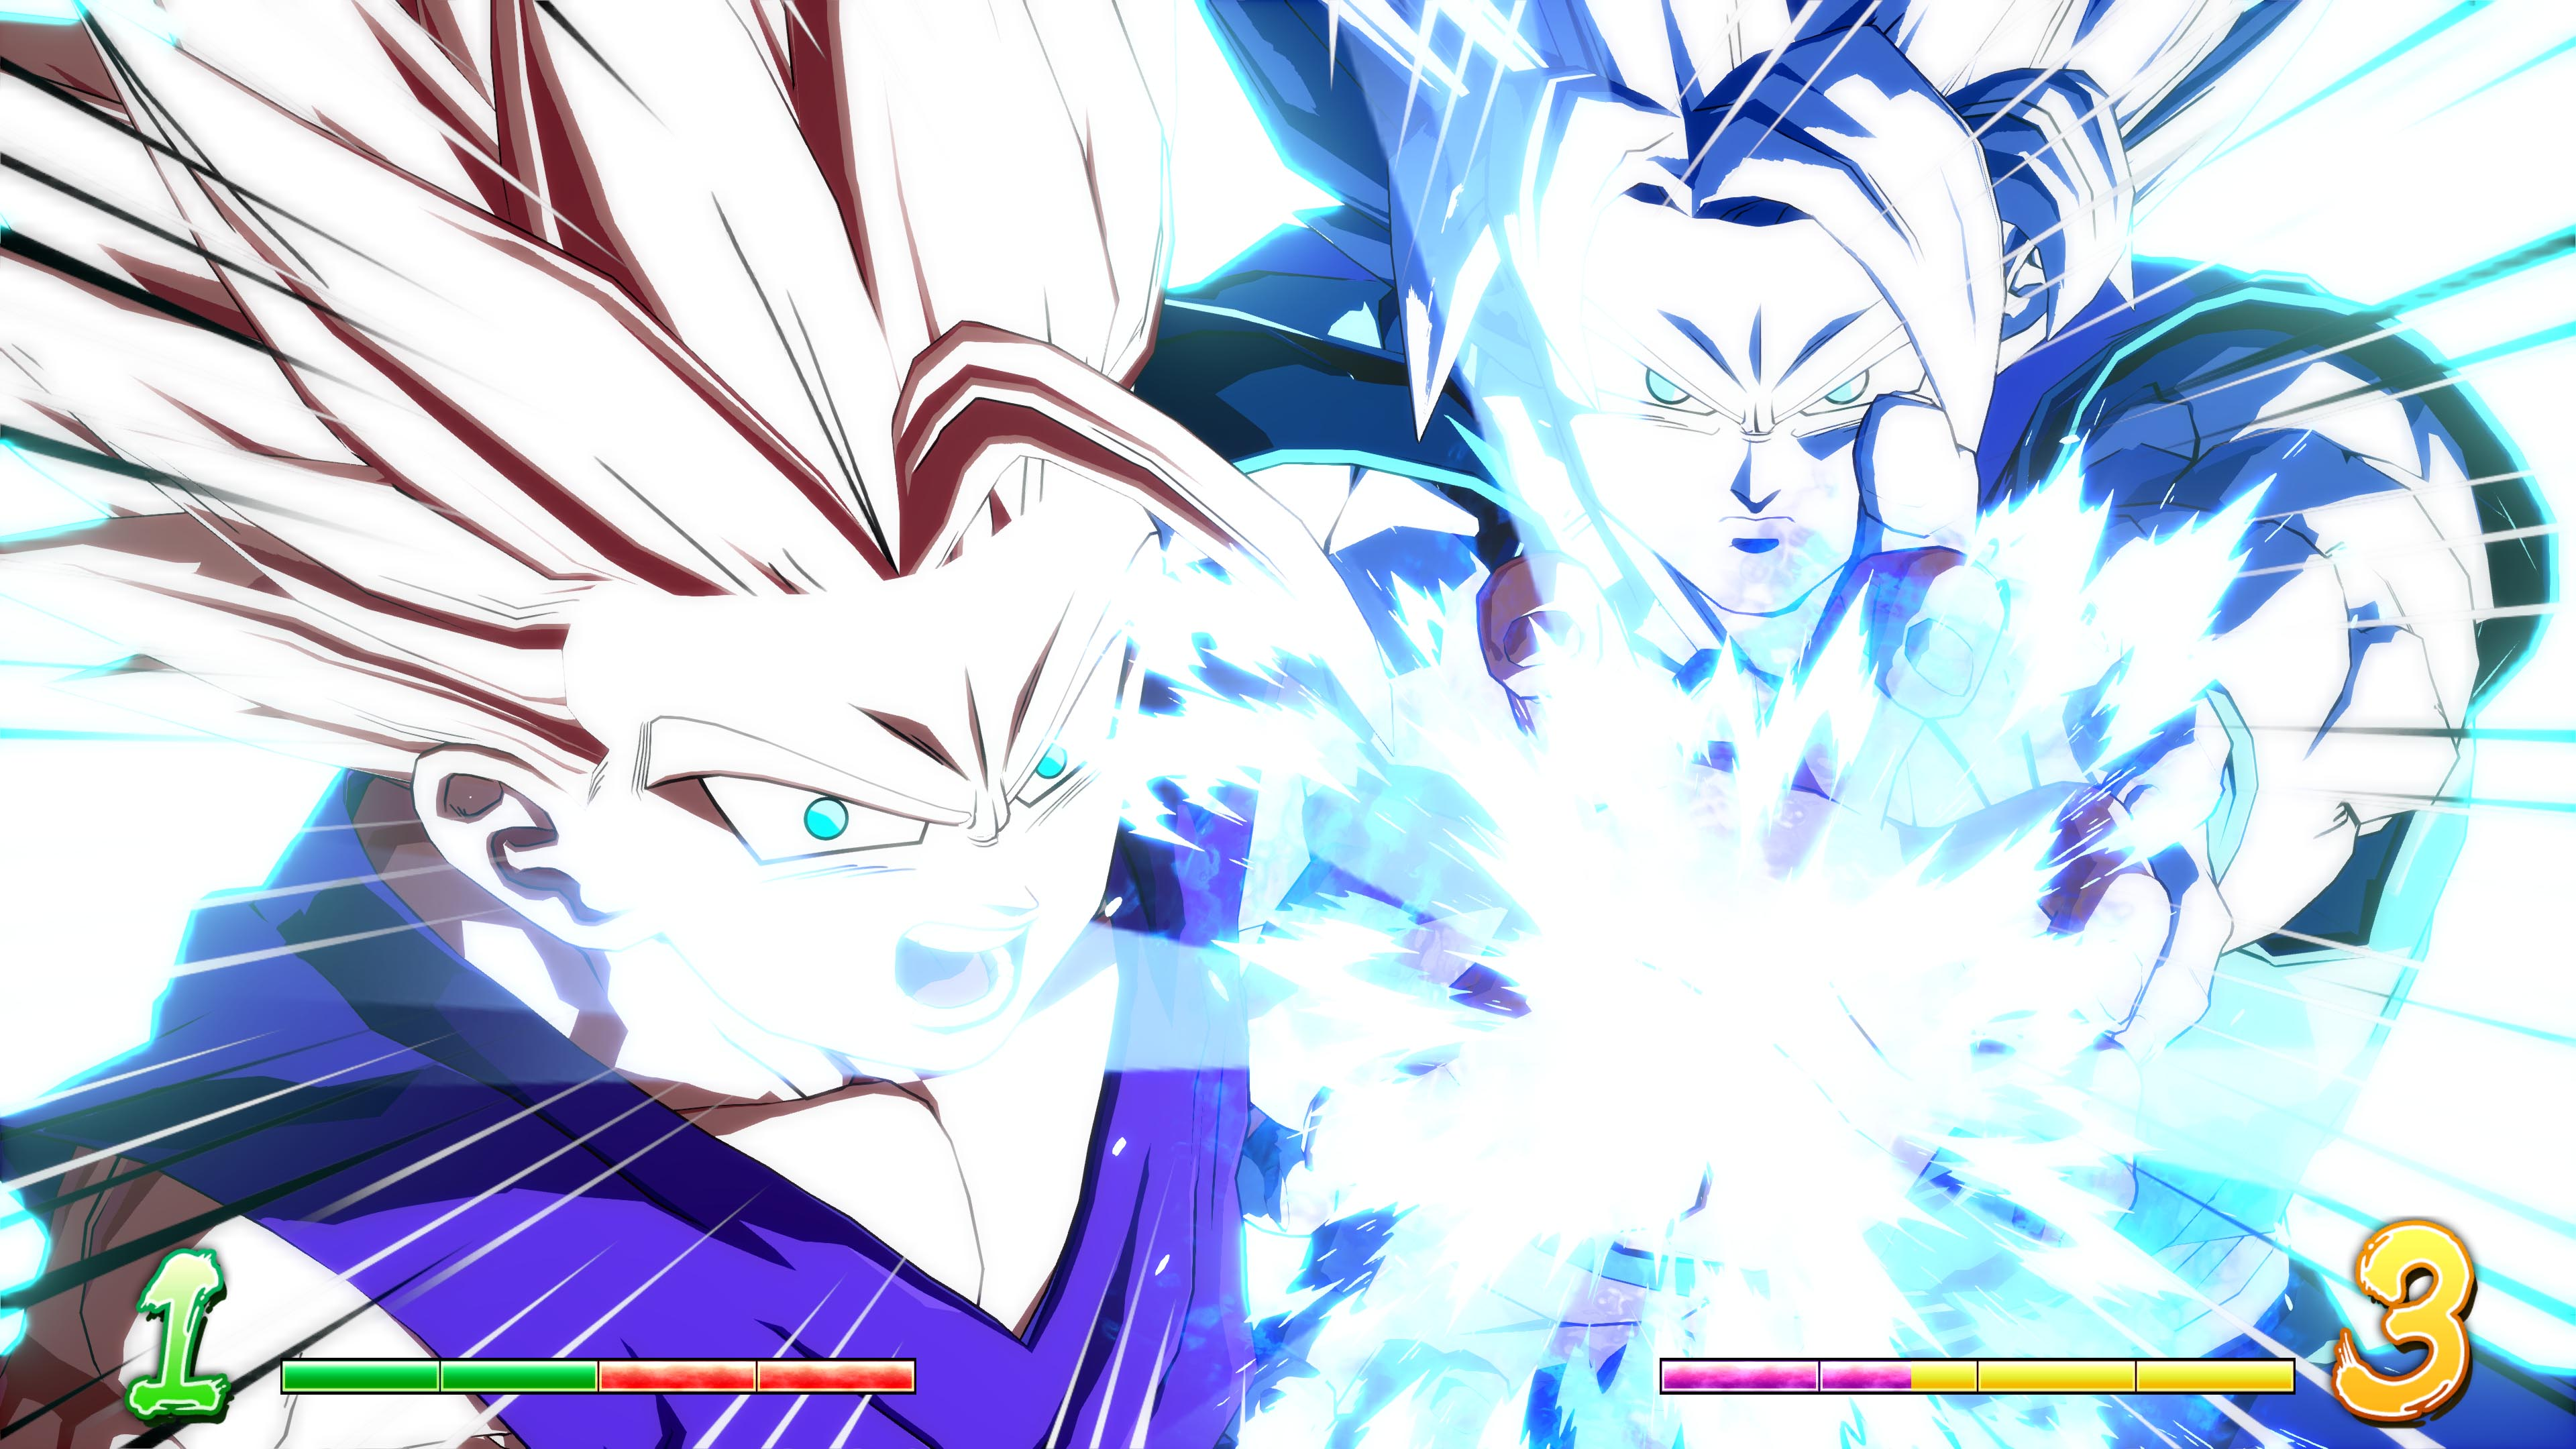 DRAGON BALL FIGHTERZ gohan adolescente super kame ha me ha